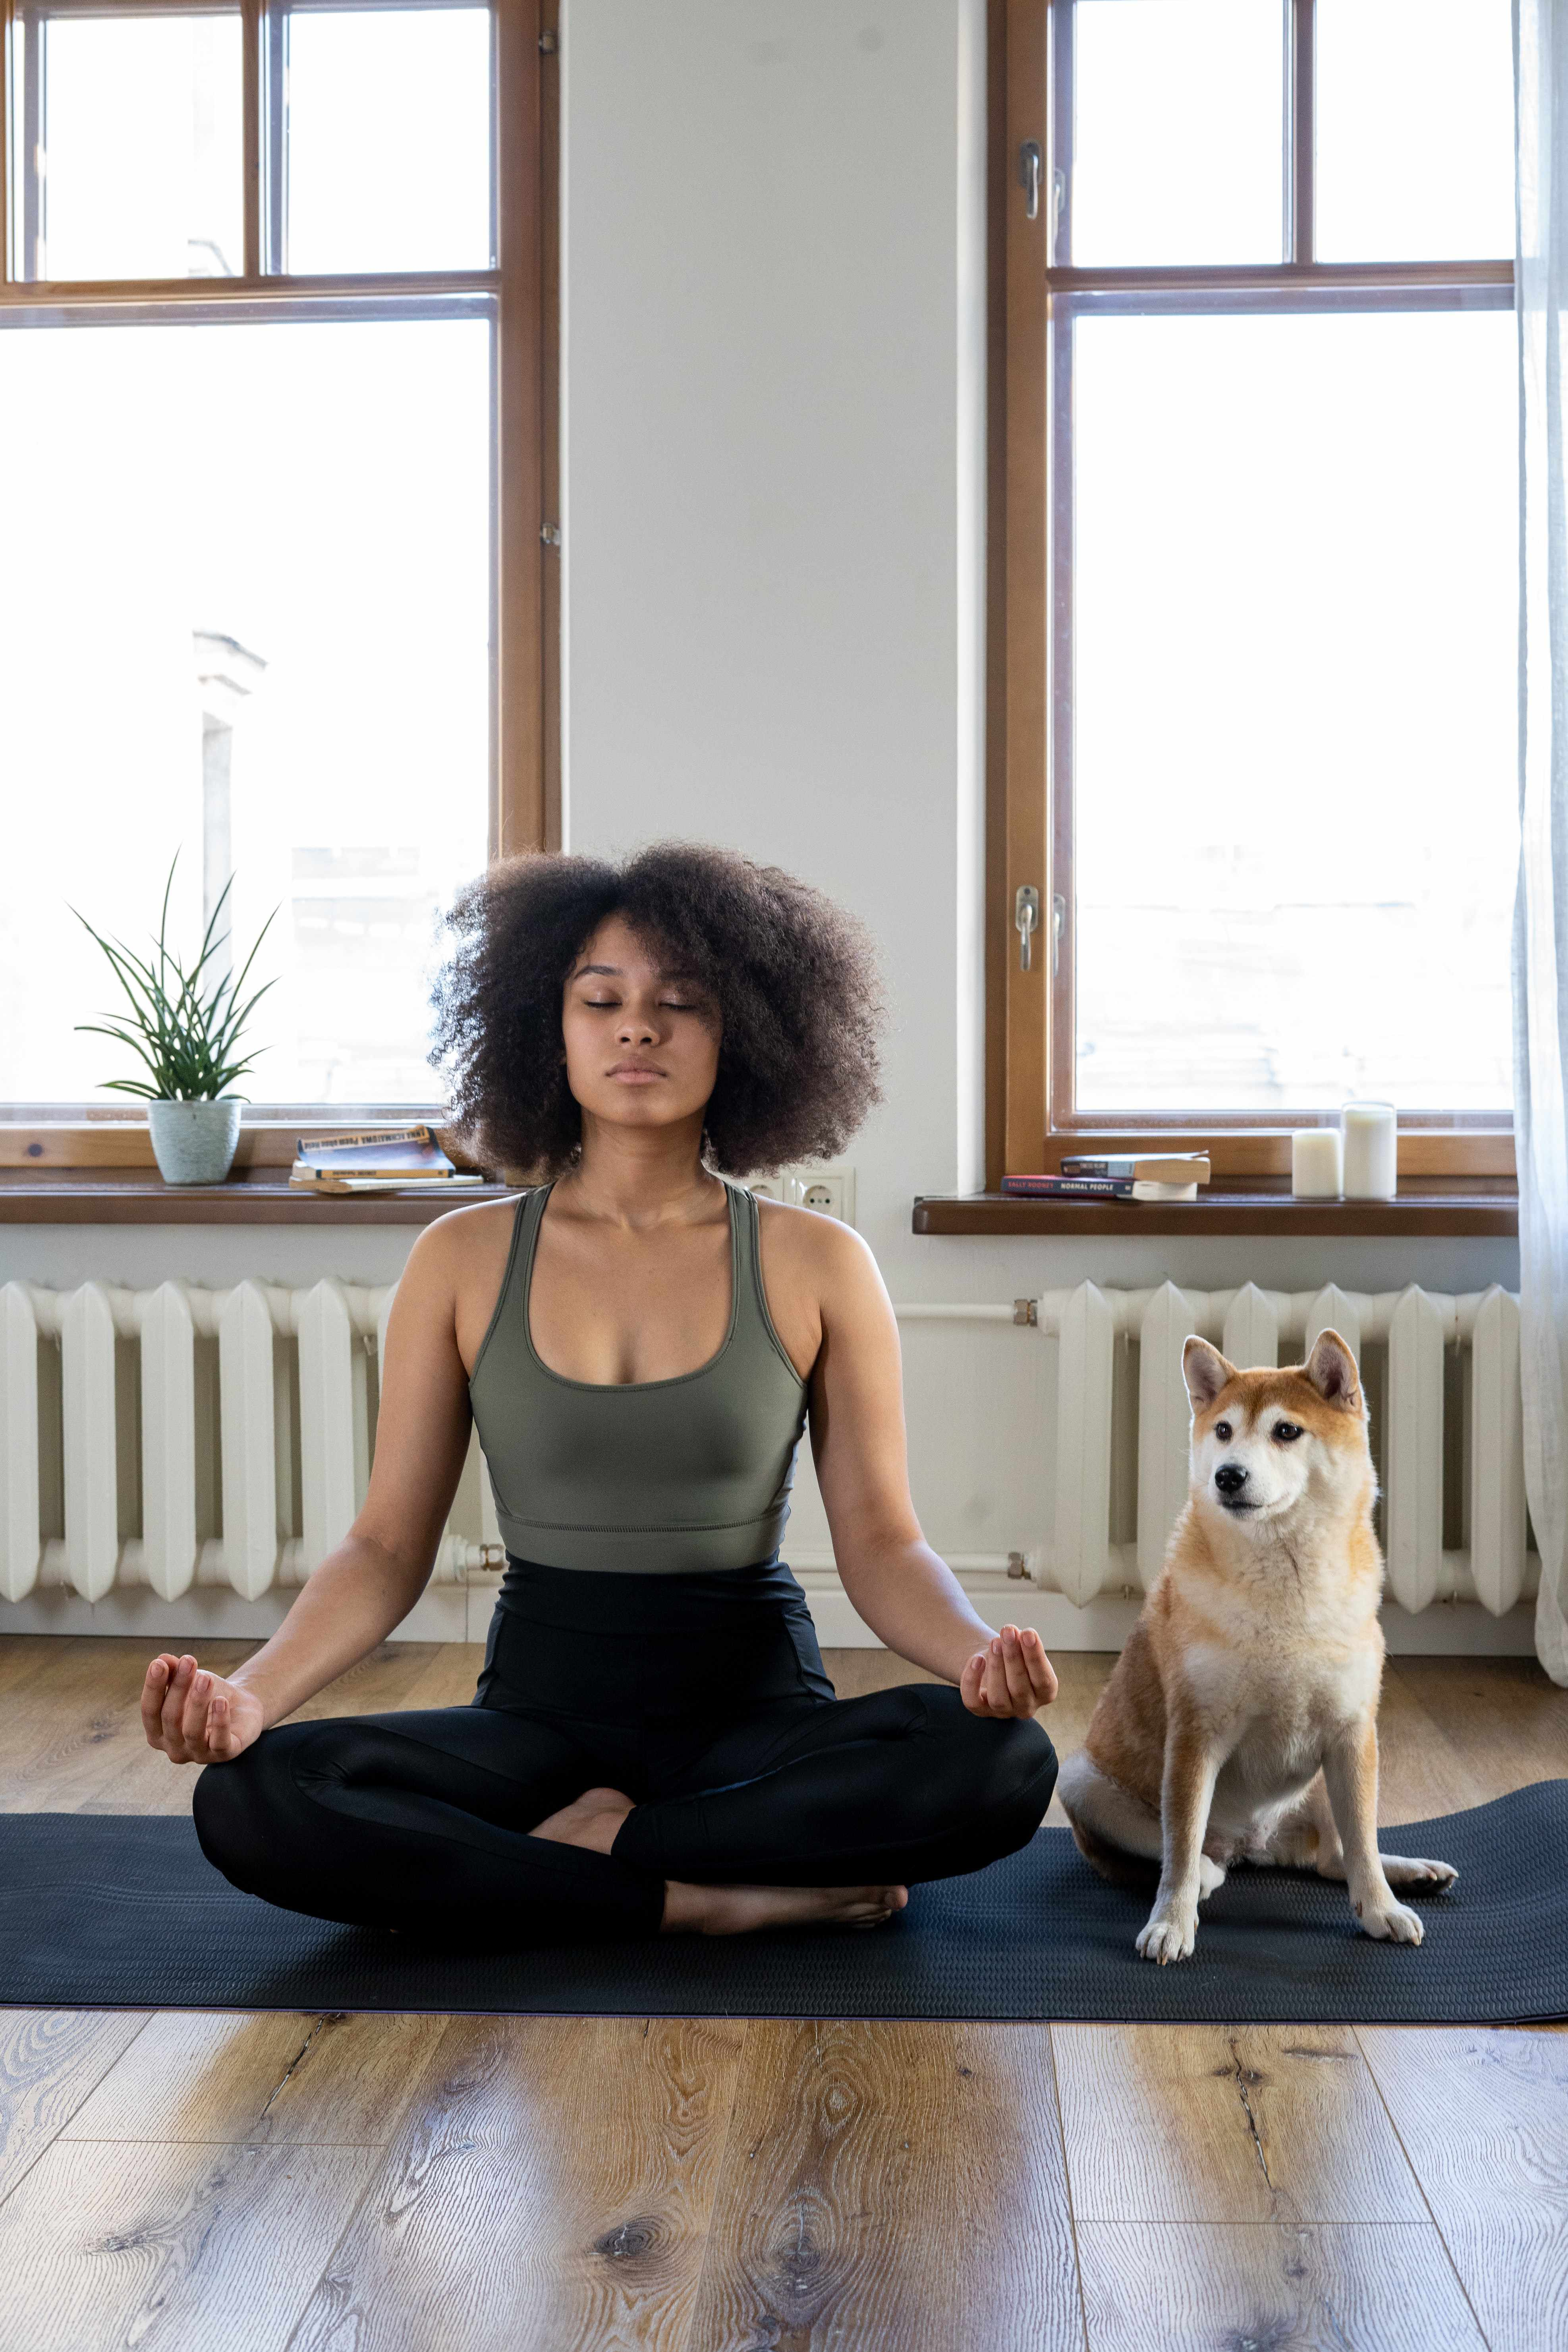 A young Black woman sitting on a yoga matt in a meditative pose, a dog sits next to her.